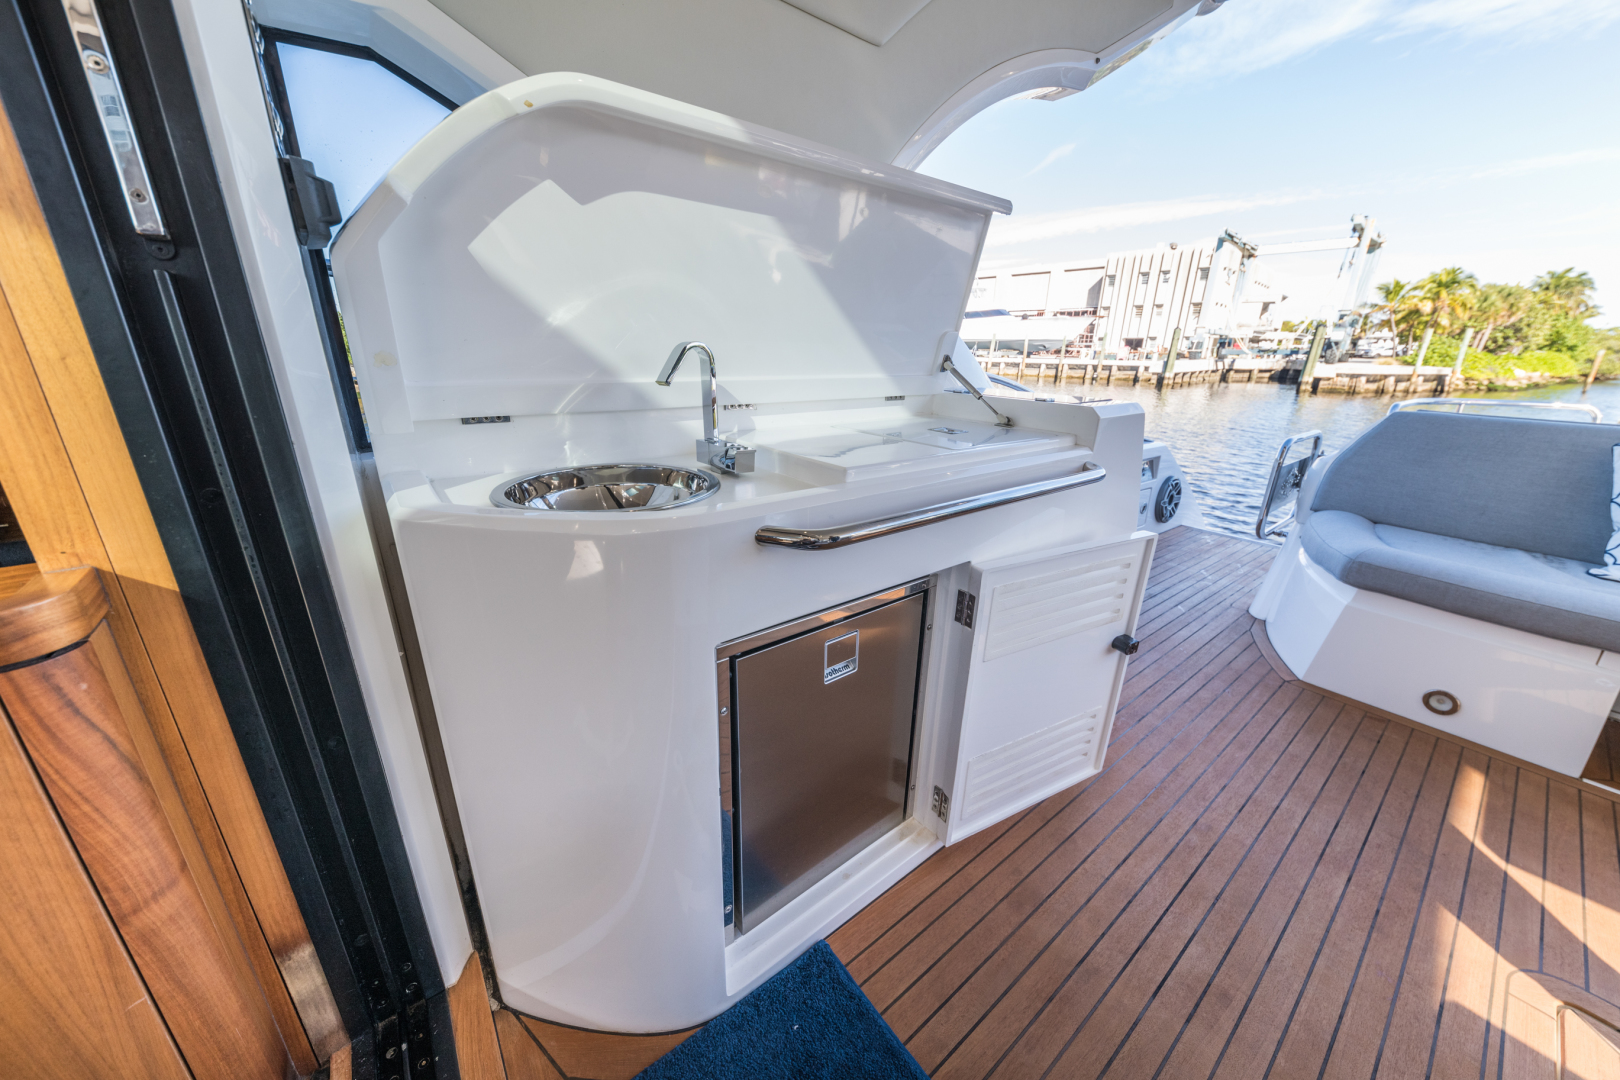 Sunseeker-Predator 2016-Wired Up Fort Lauderdale-Florida-United States-Wet bar-1585648 | Thumbnail